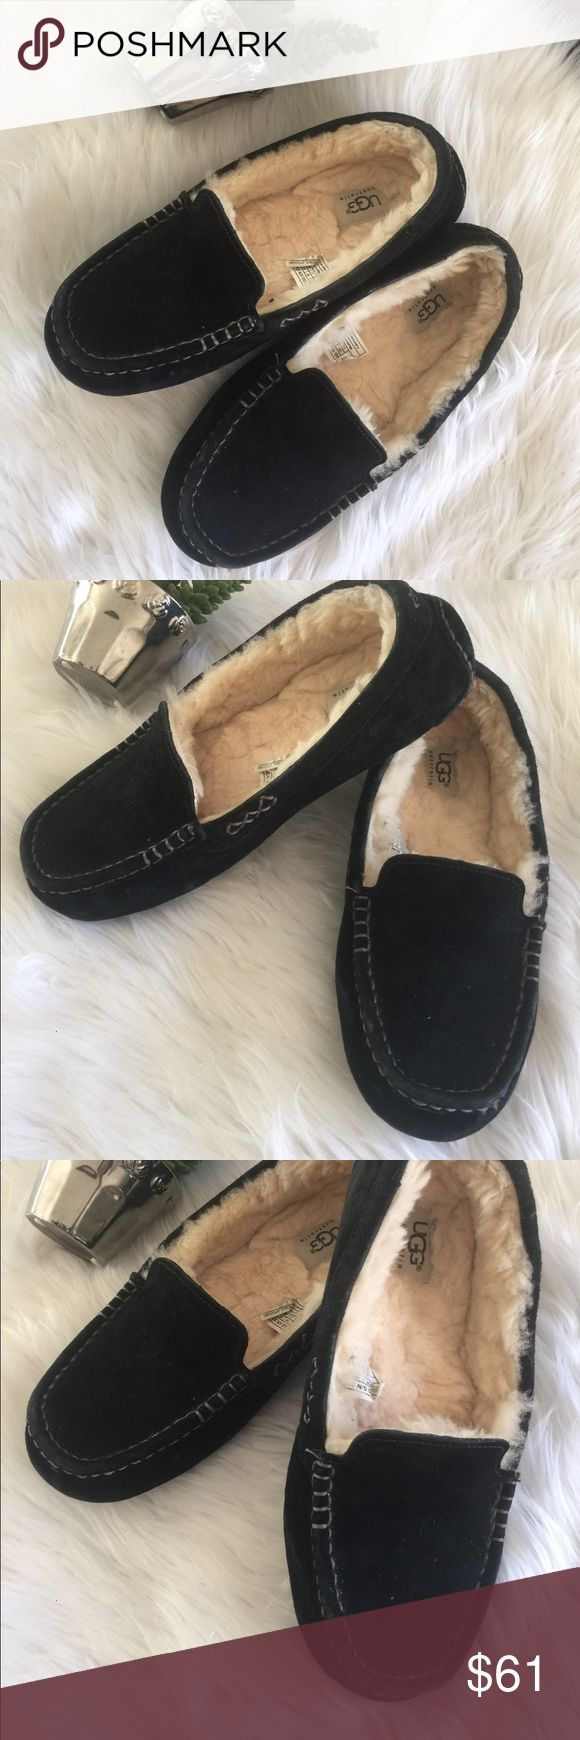 Ugg black suede moccasin slippers ladies Sz 9 Great, minimally worn condition, very light use/wear, even soles are great! UGG Shoes Moccasins